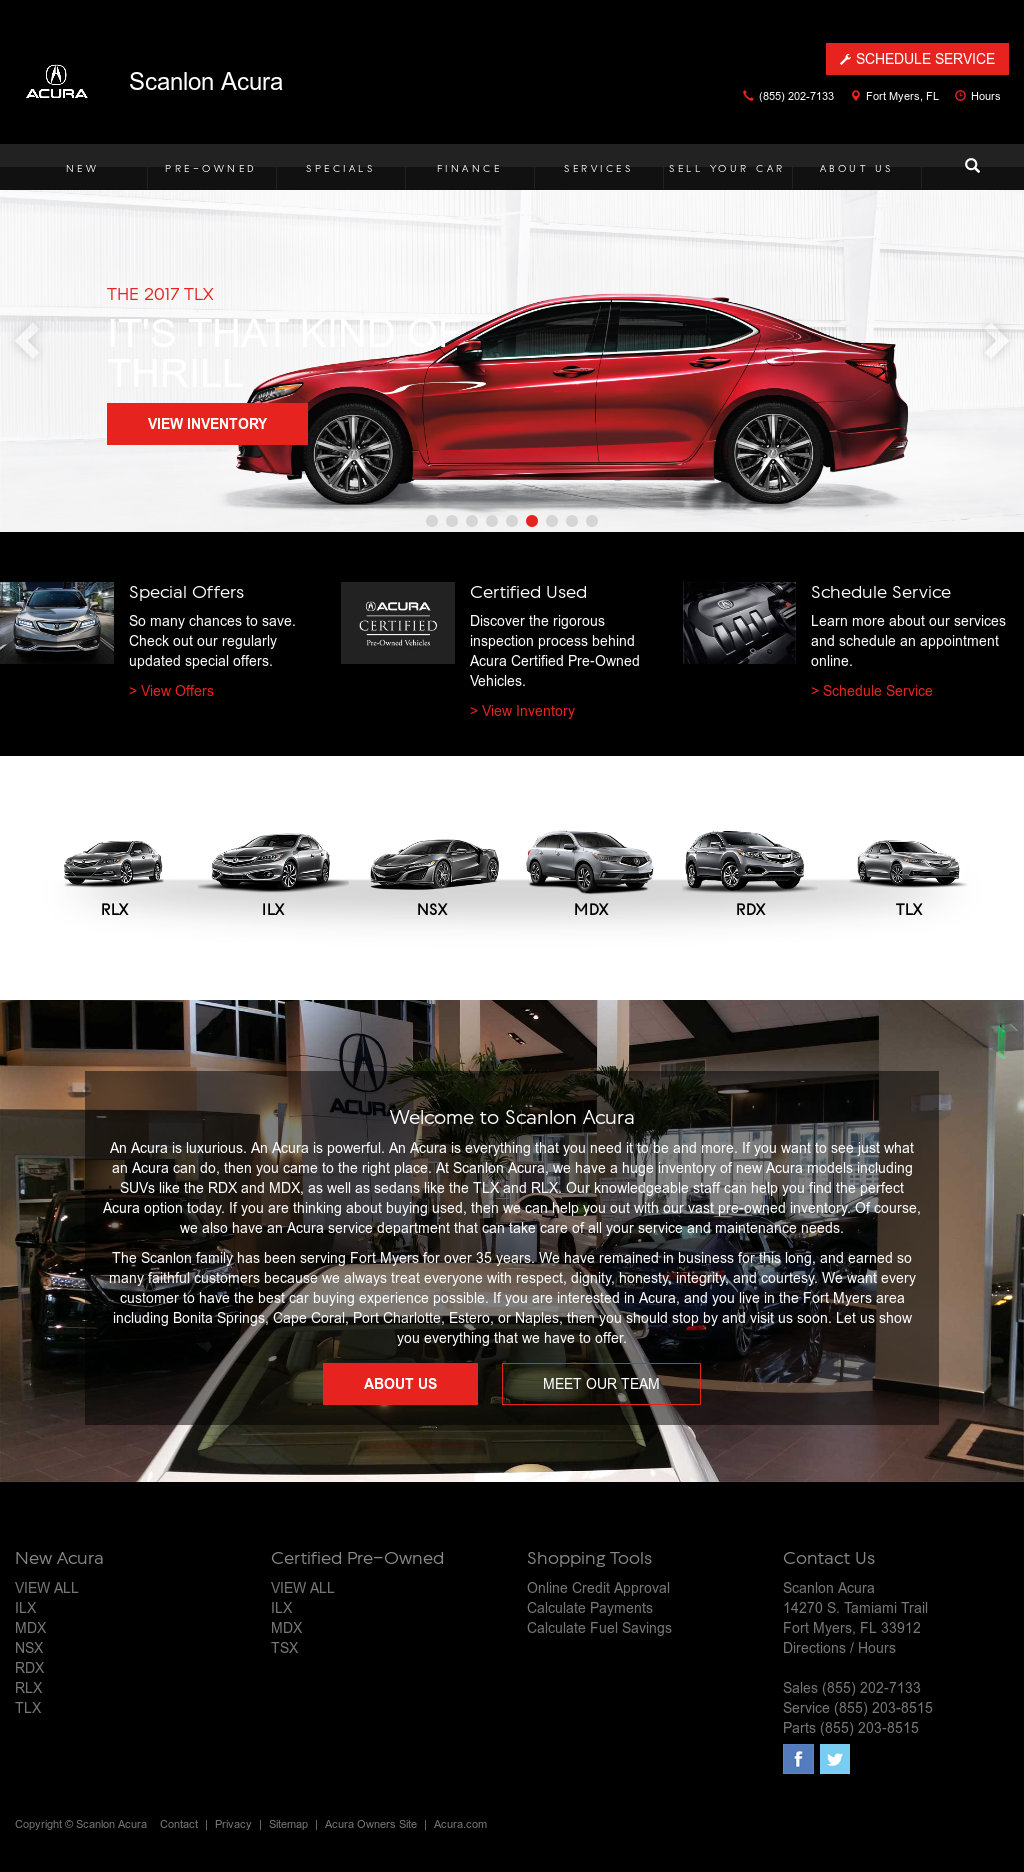 Scanlon Acura Car Dealers 14270 S Tamiami Trl Fort Myers Fl >> Scanlon Acura Competitors Revenue And Employees Owler Company Profile